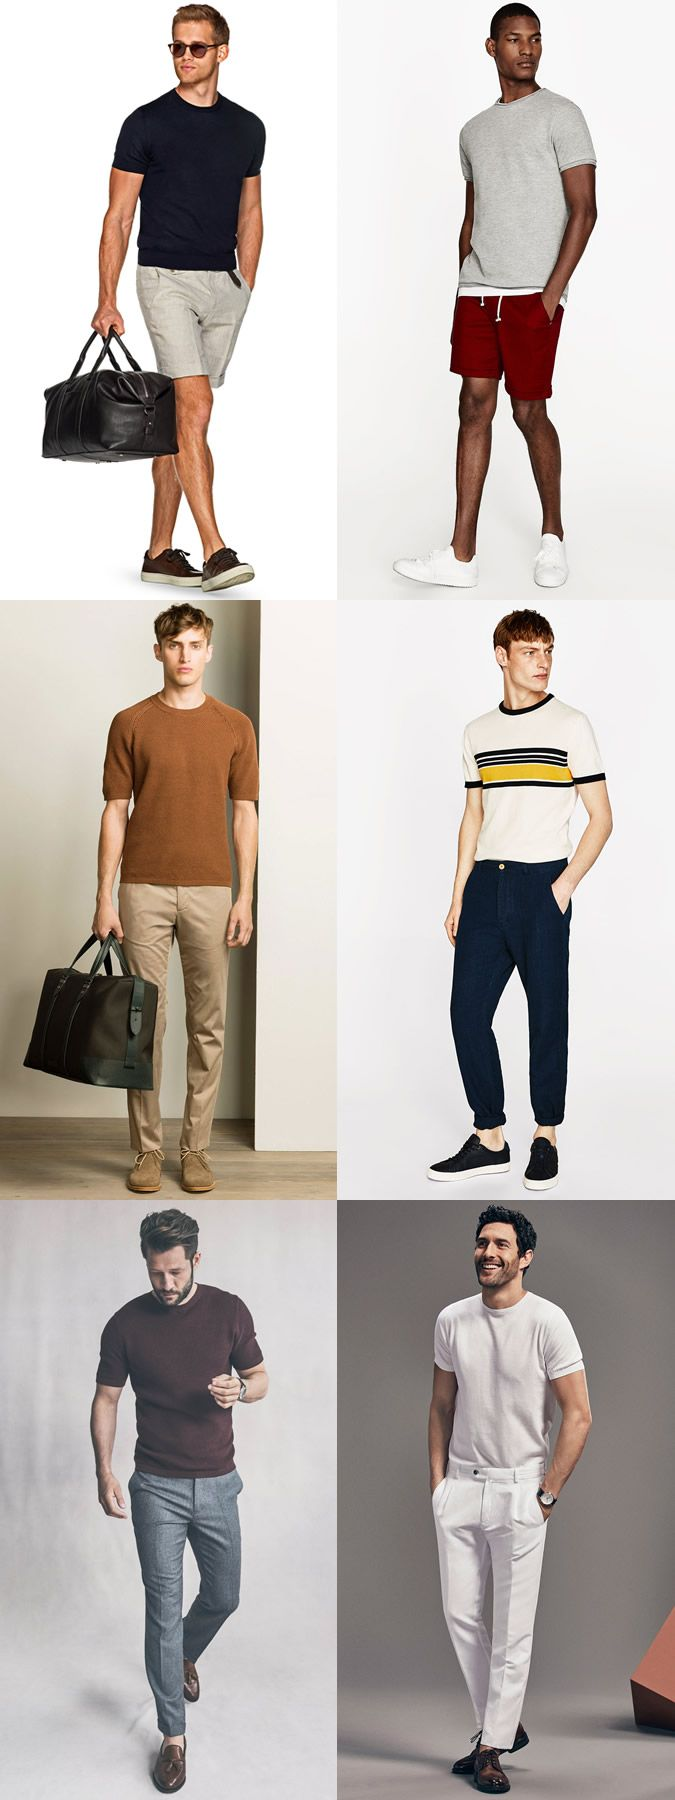 Men's Knitted T-Shirts Outfits Lookbook Inspiration